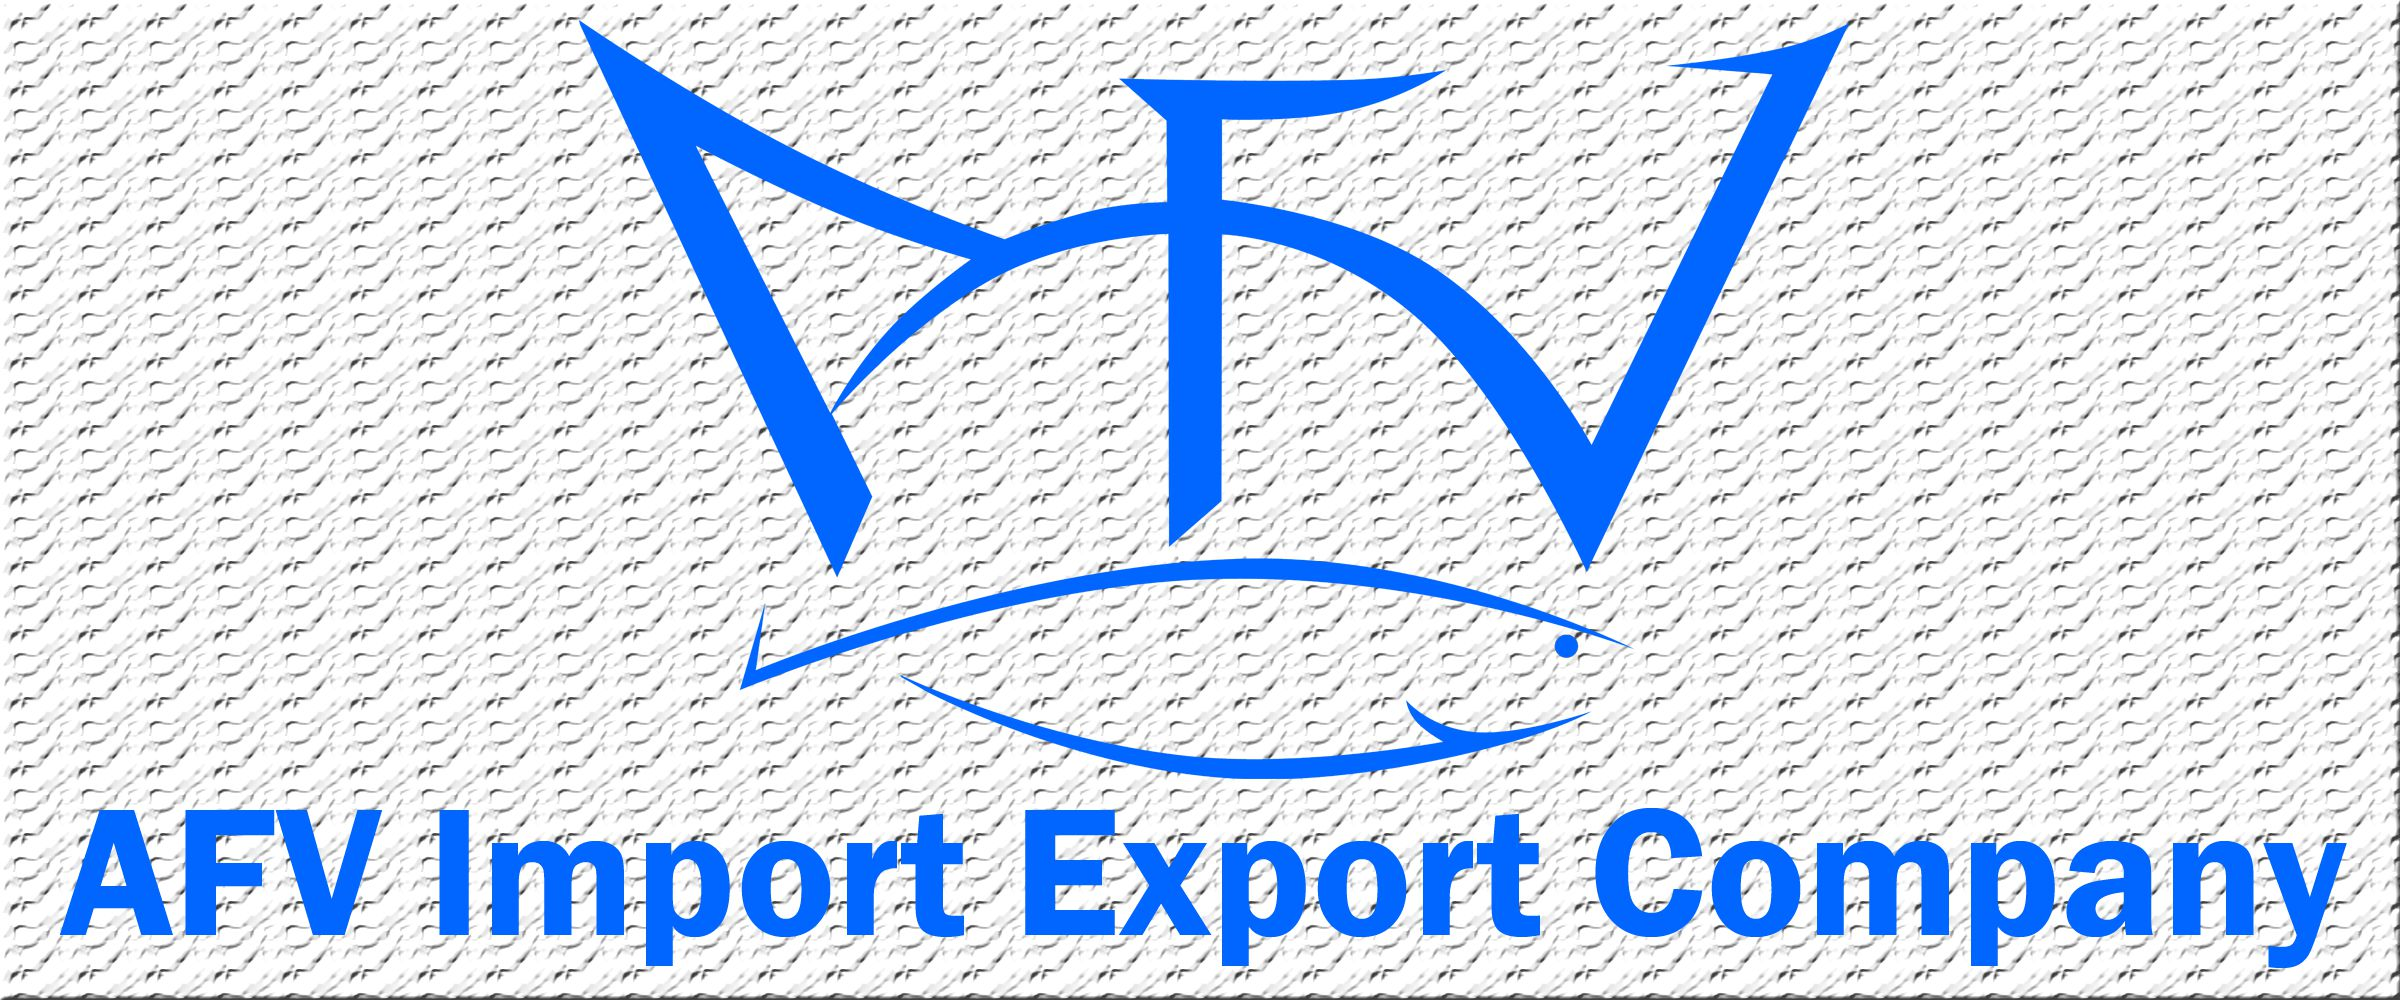 Lobster AFV Import Export Company - Live Lobster, Dried sea cucumber